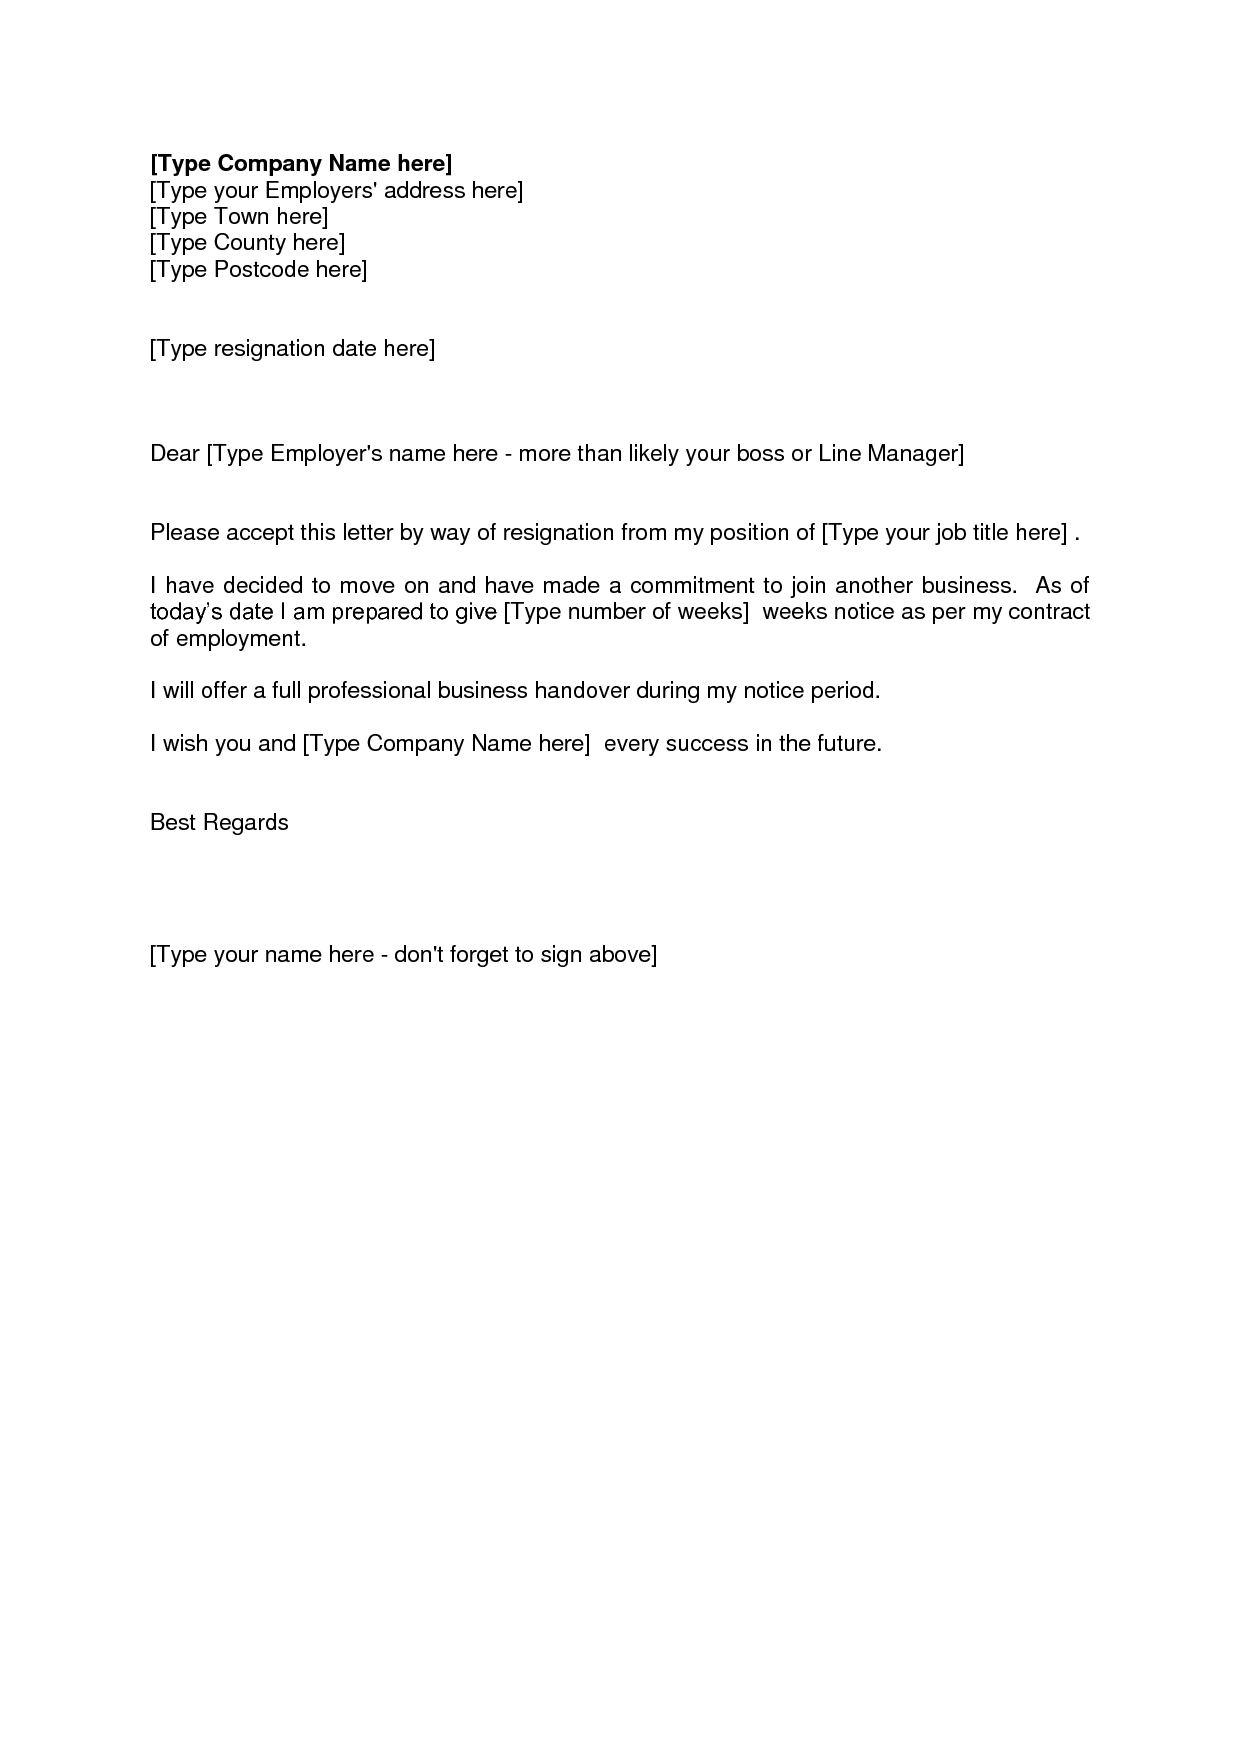 Letter Of Resignation Weeks Notice Template HDWriting A Letter Of  Resignation Email Letter Sample  Sample Of Letter Of Resignation